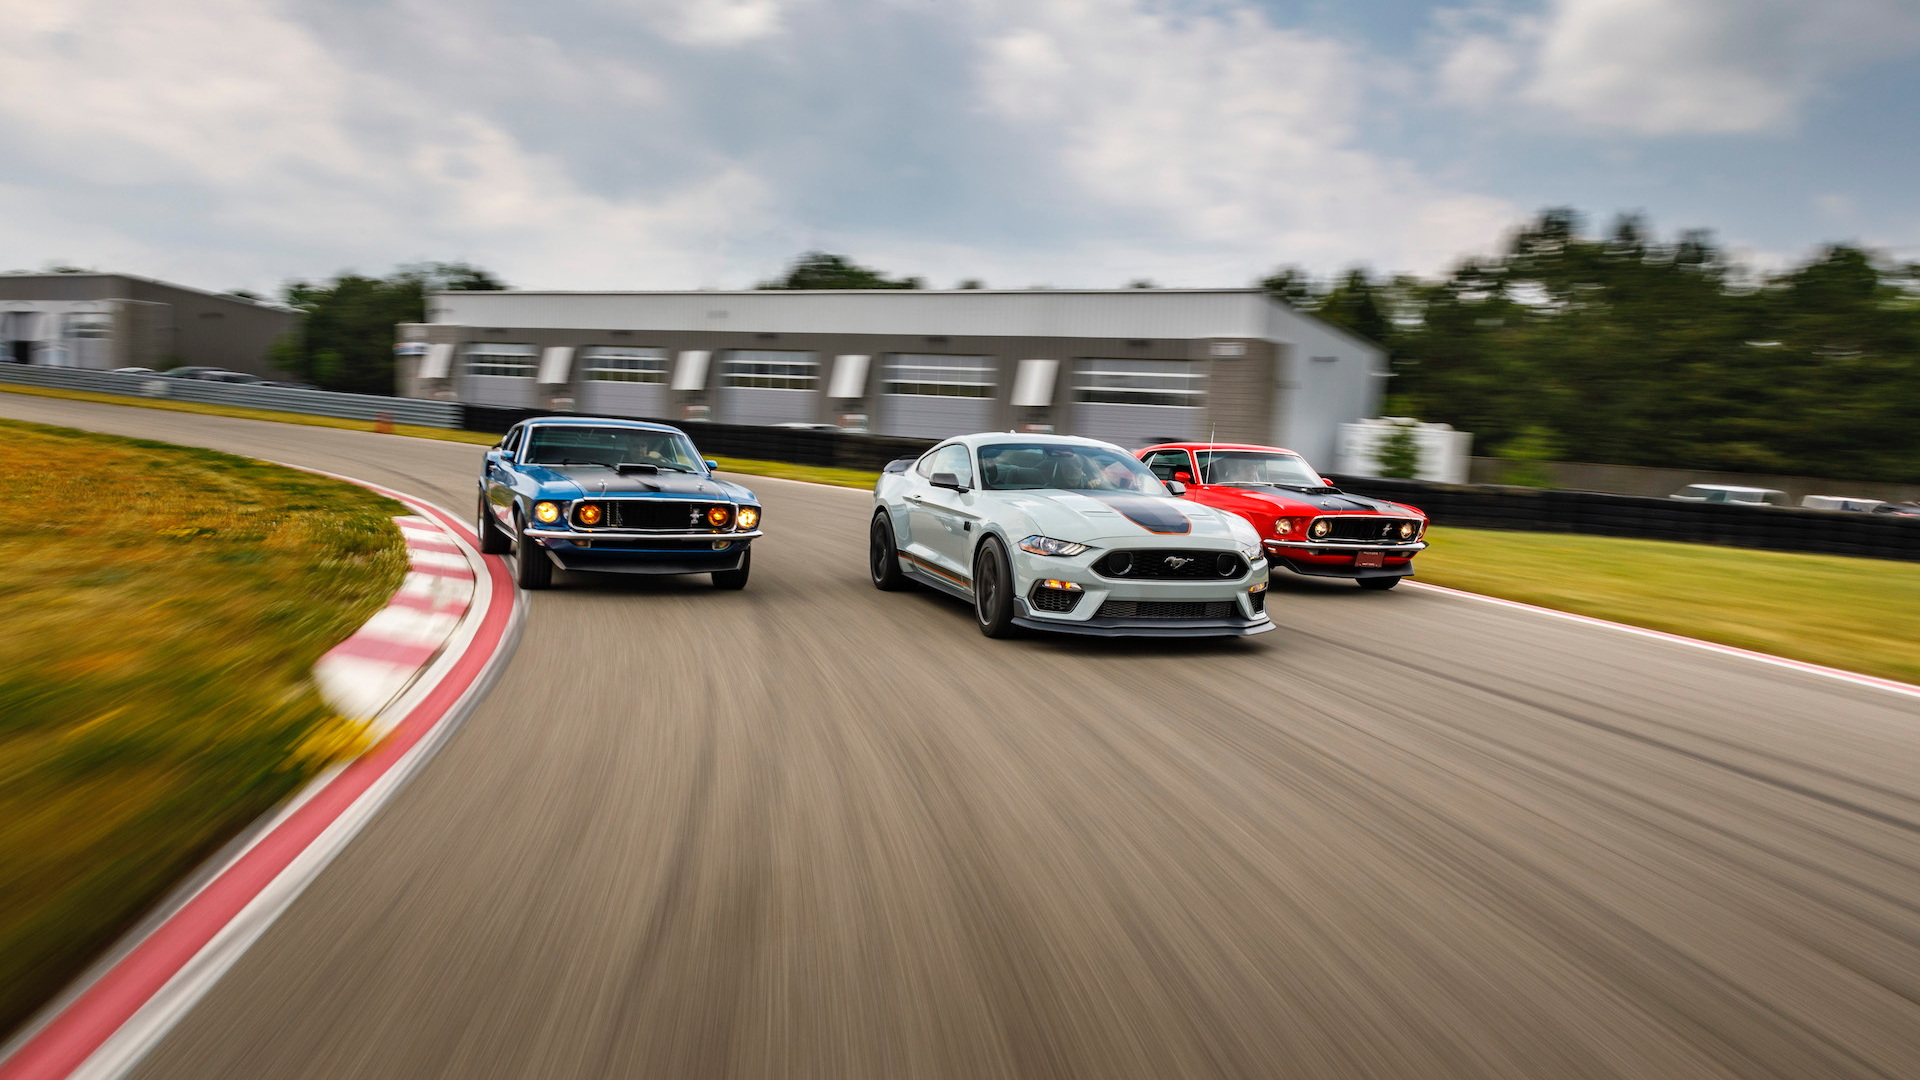 Ford Mustang Mach 1: Here's how much it costs